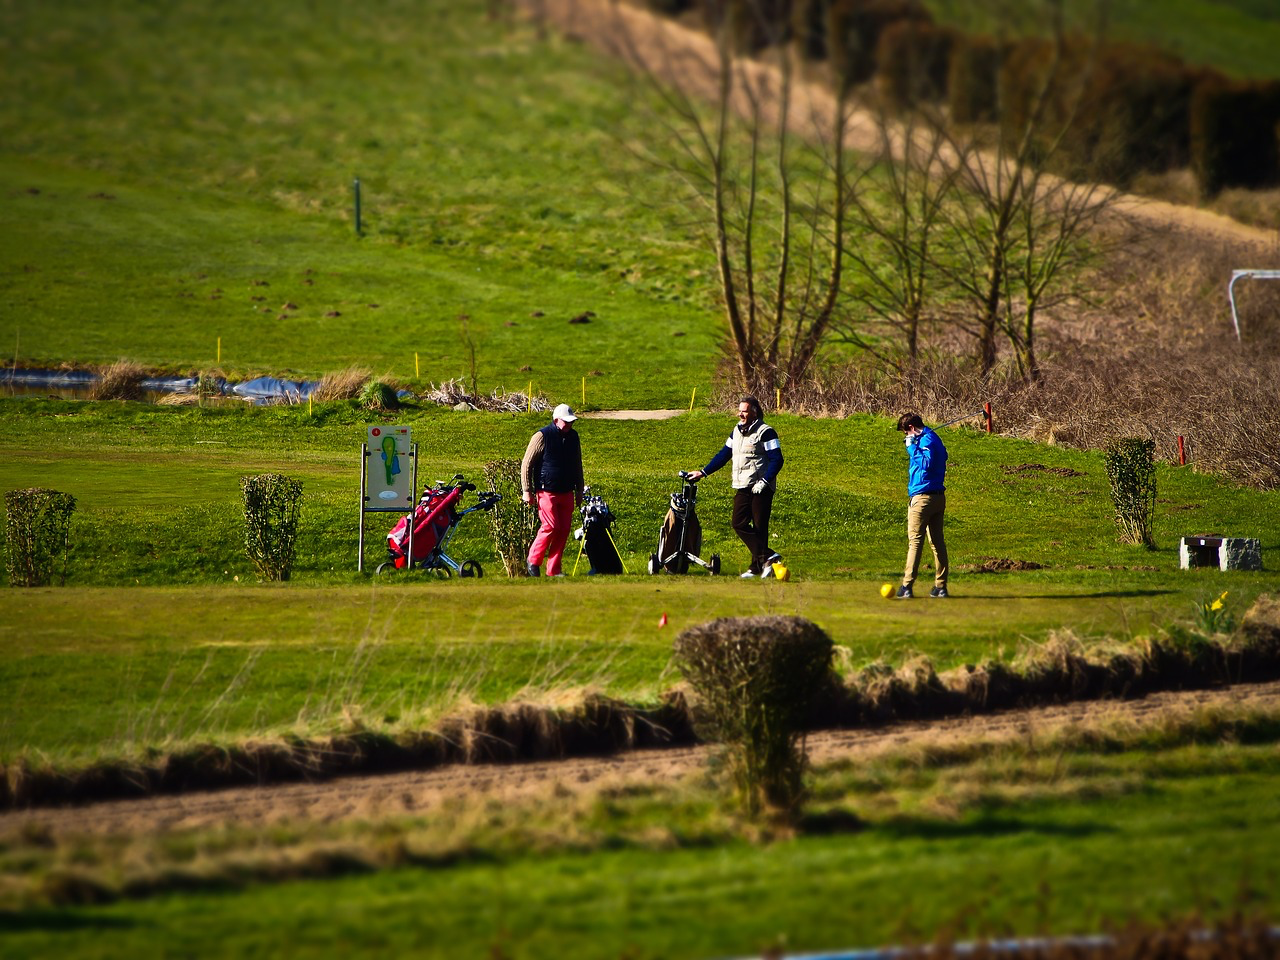 Get on out there and enjoy some golfing with friends.